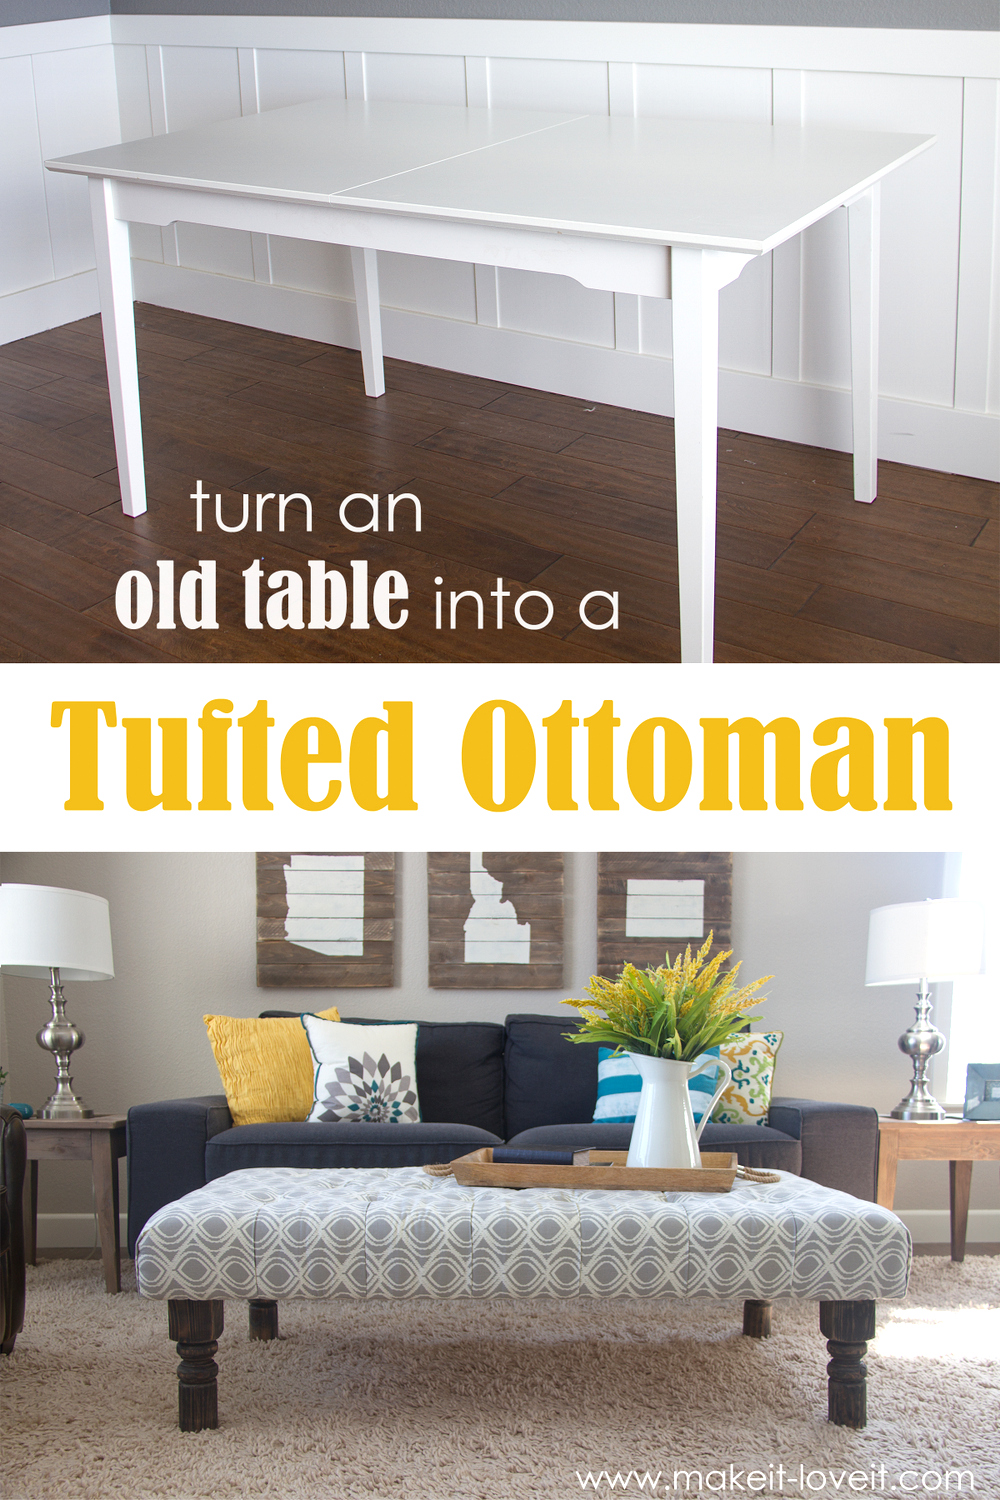 New DIY Tufted Ottoman from an old kithen table or coffee